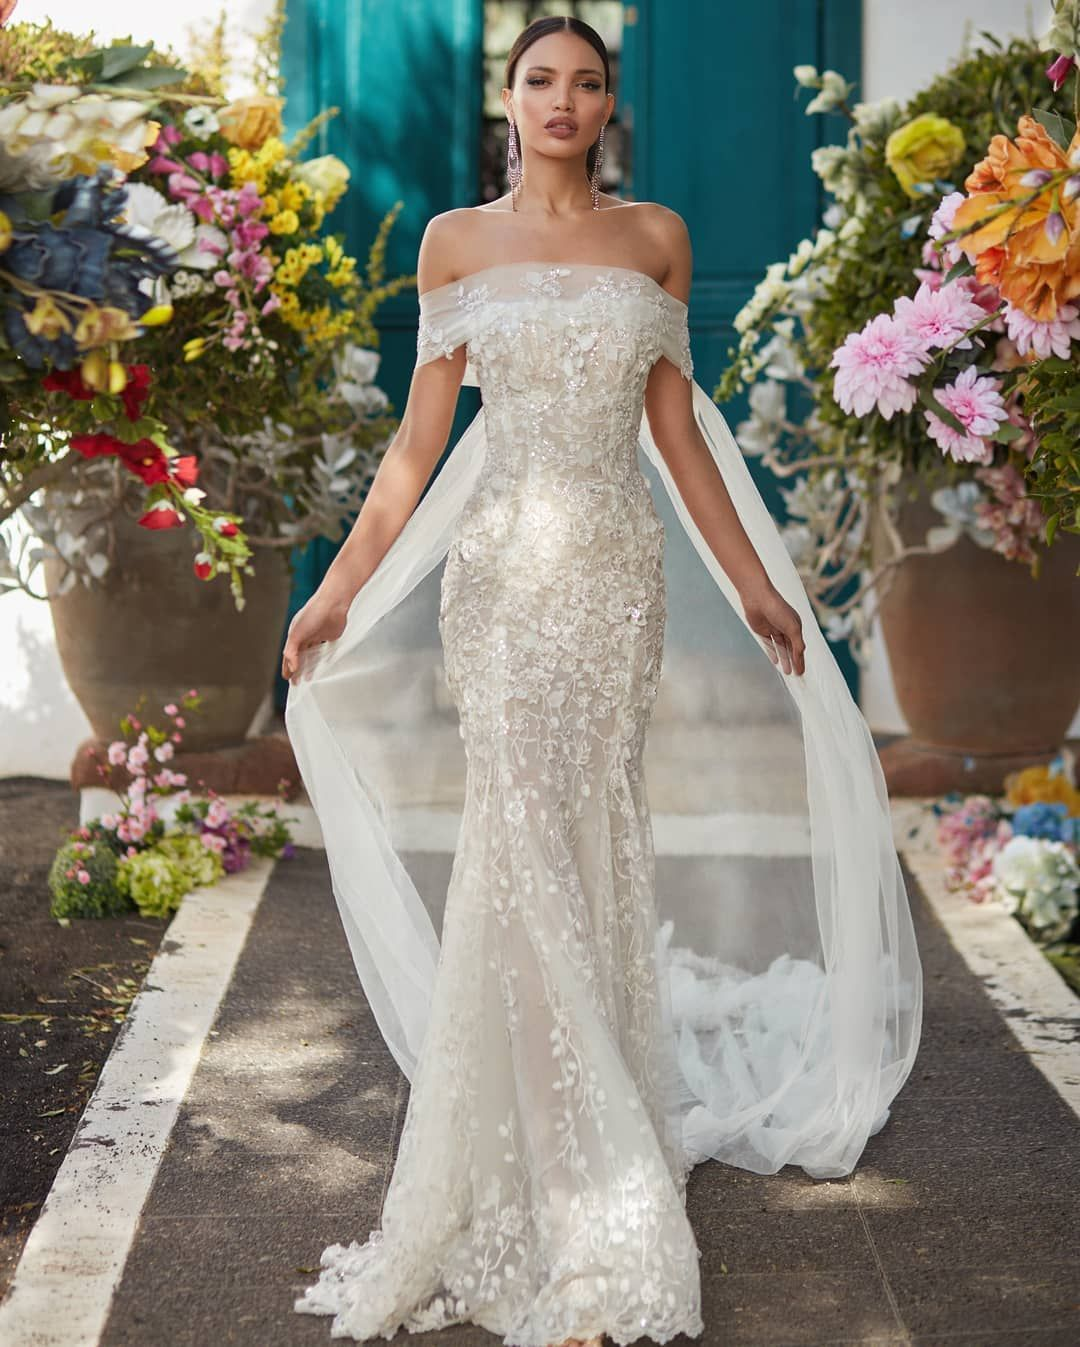 Bridal gown has a silvery shimmer to it off the shoulder